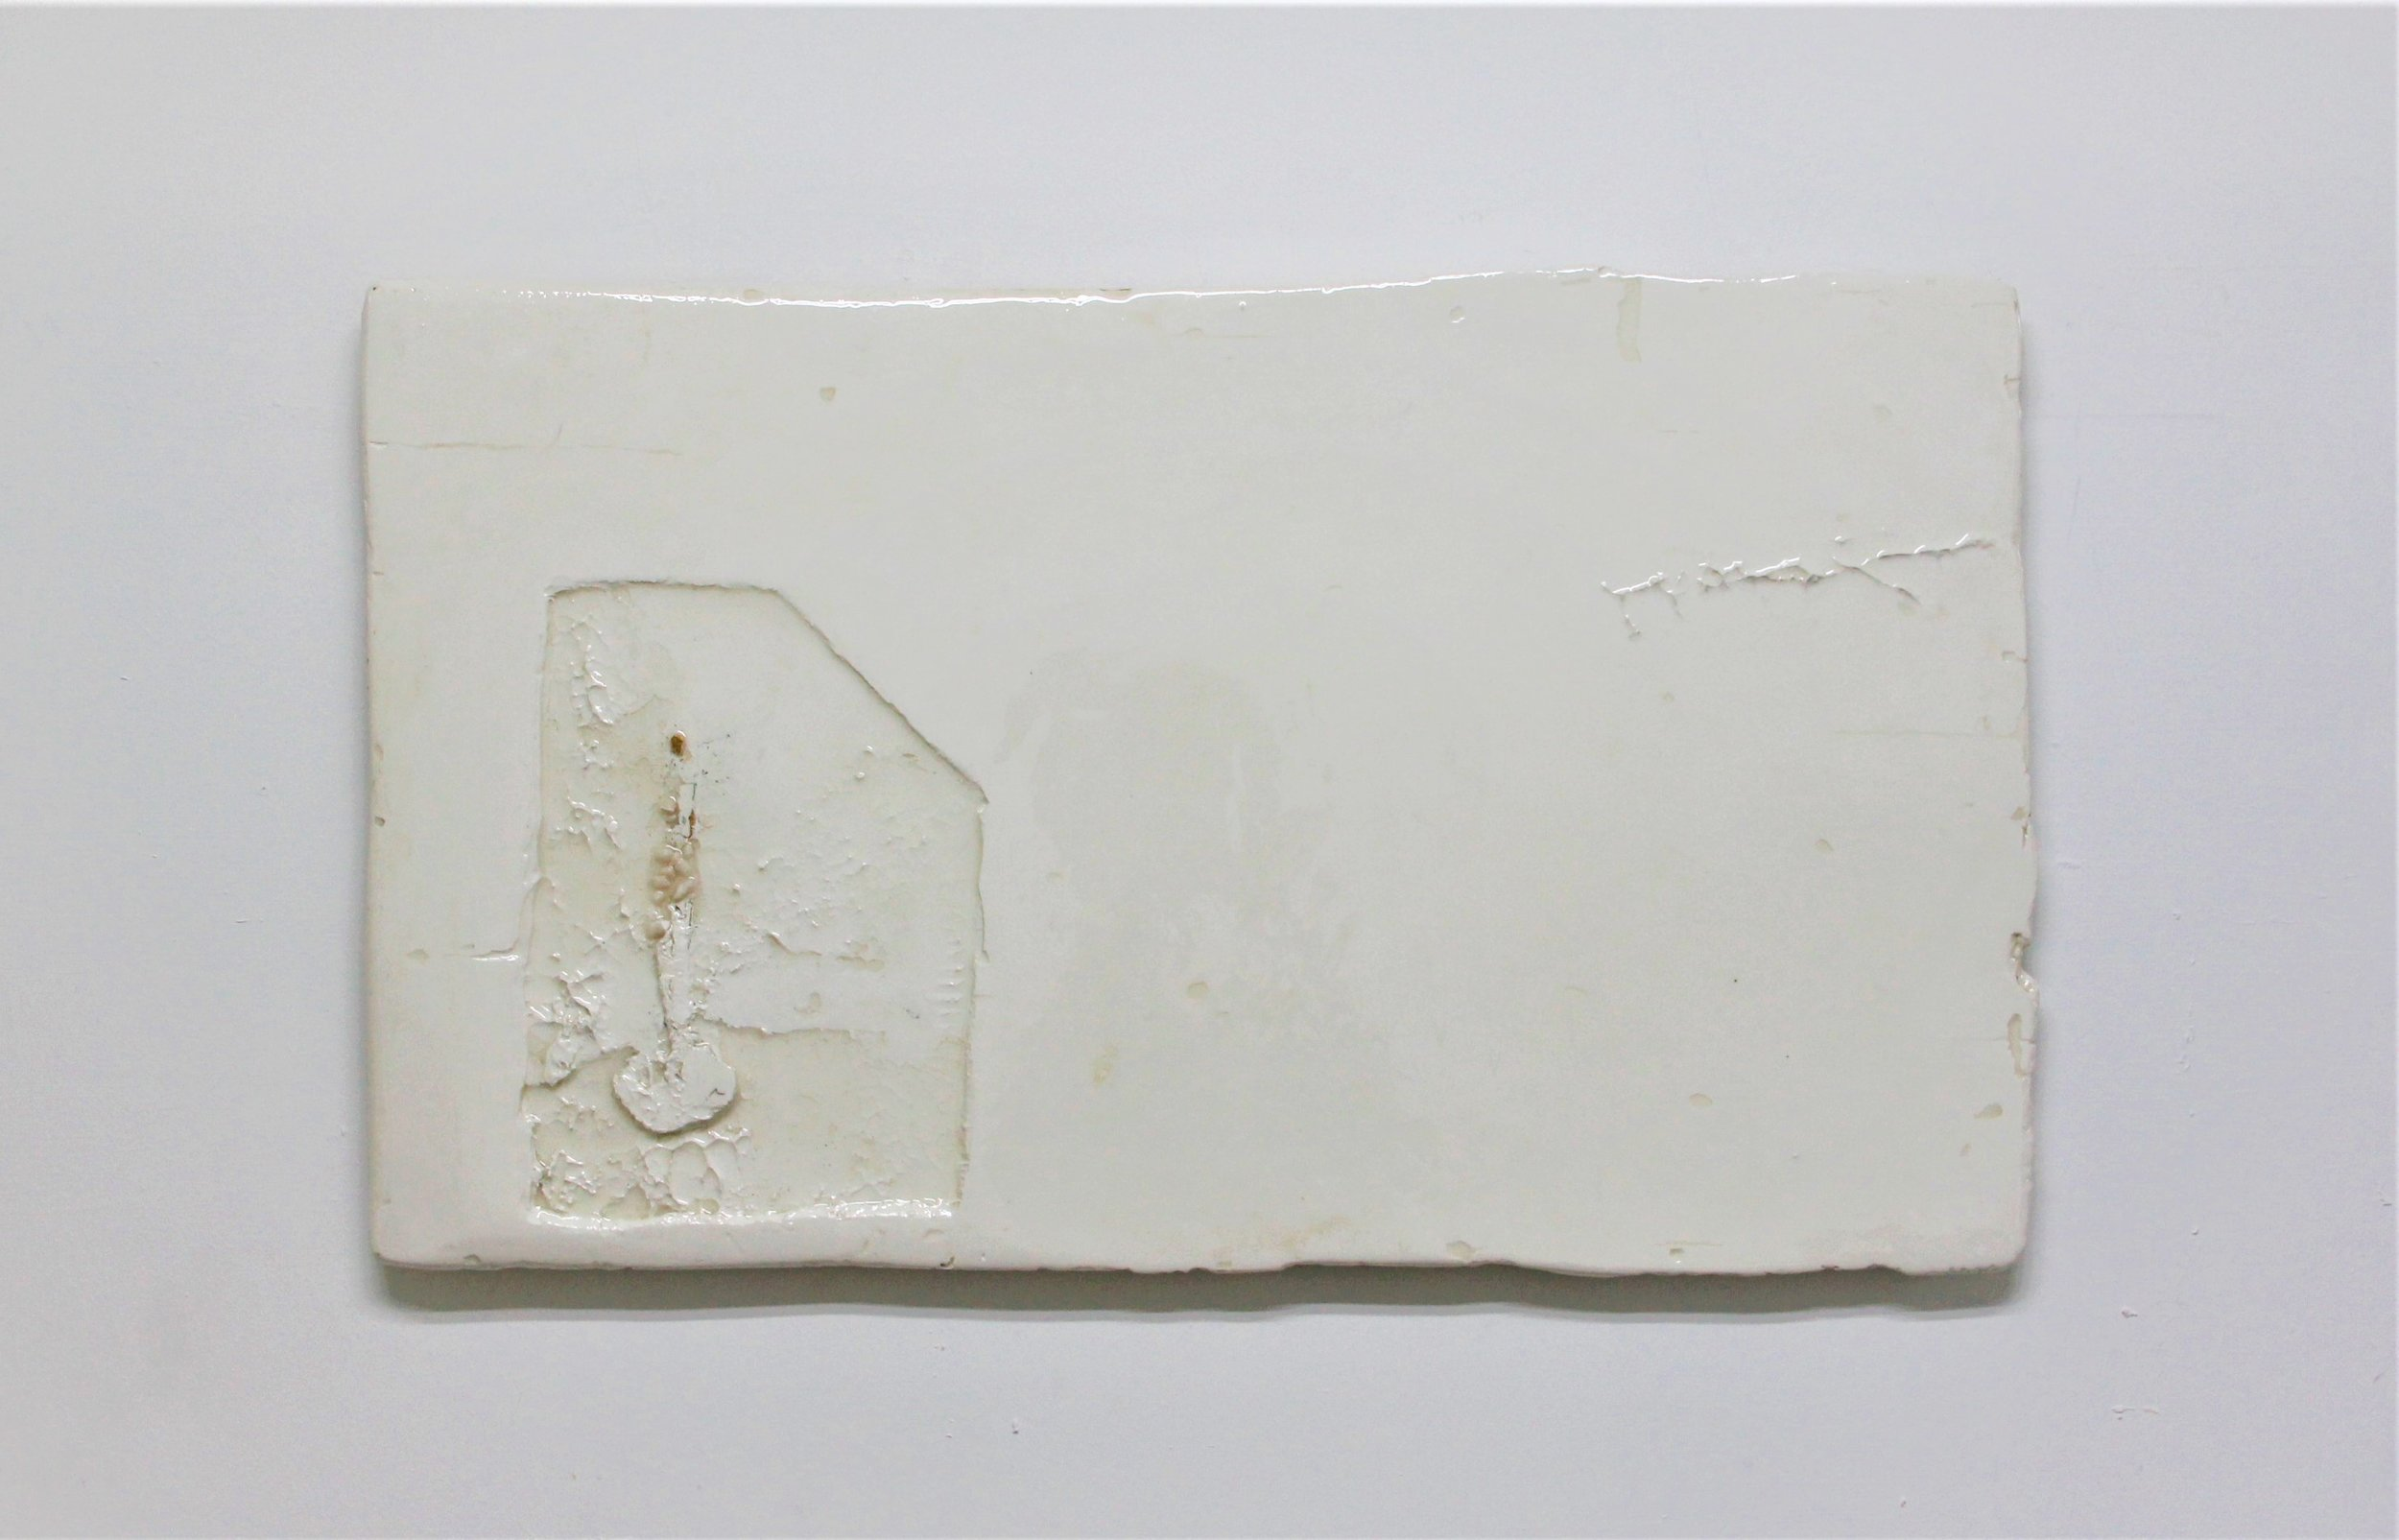 Appendix 7, 2019, Resinated Gypsum Plaster and Gold Leaf on Wood, 53 x 90 cm.jpg